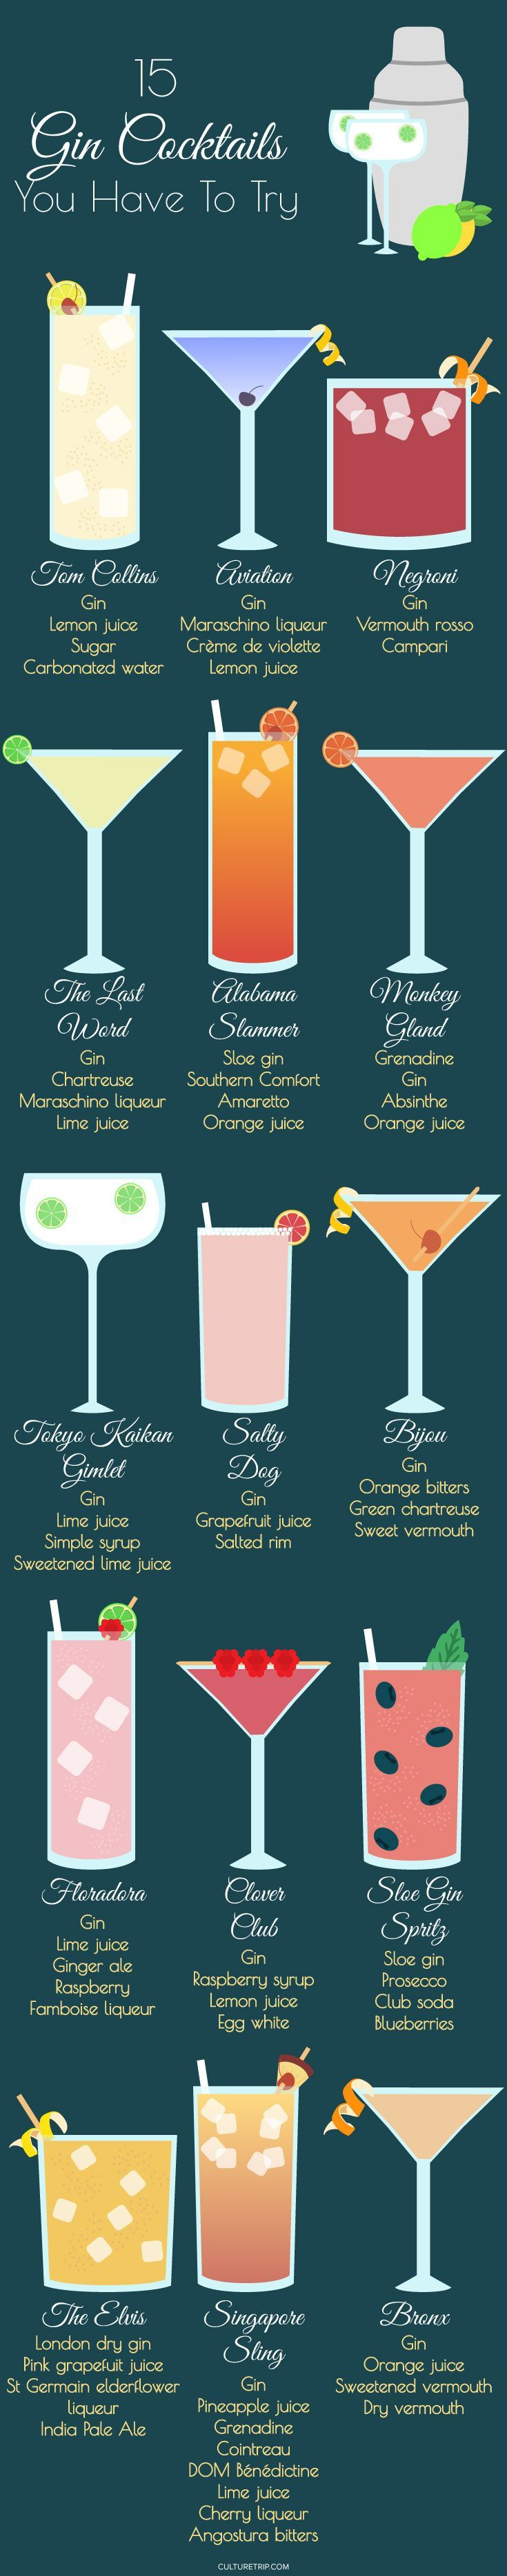 15 Incredible Cocktails to Make With Gin (Infographic)|Pinterest: @theculturetrip